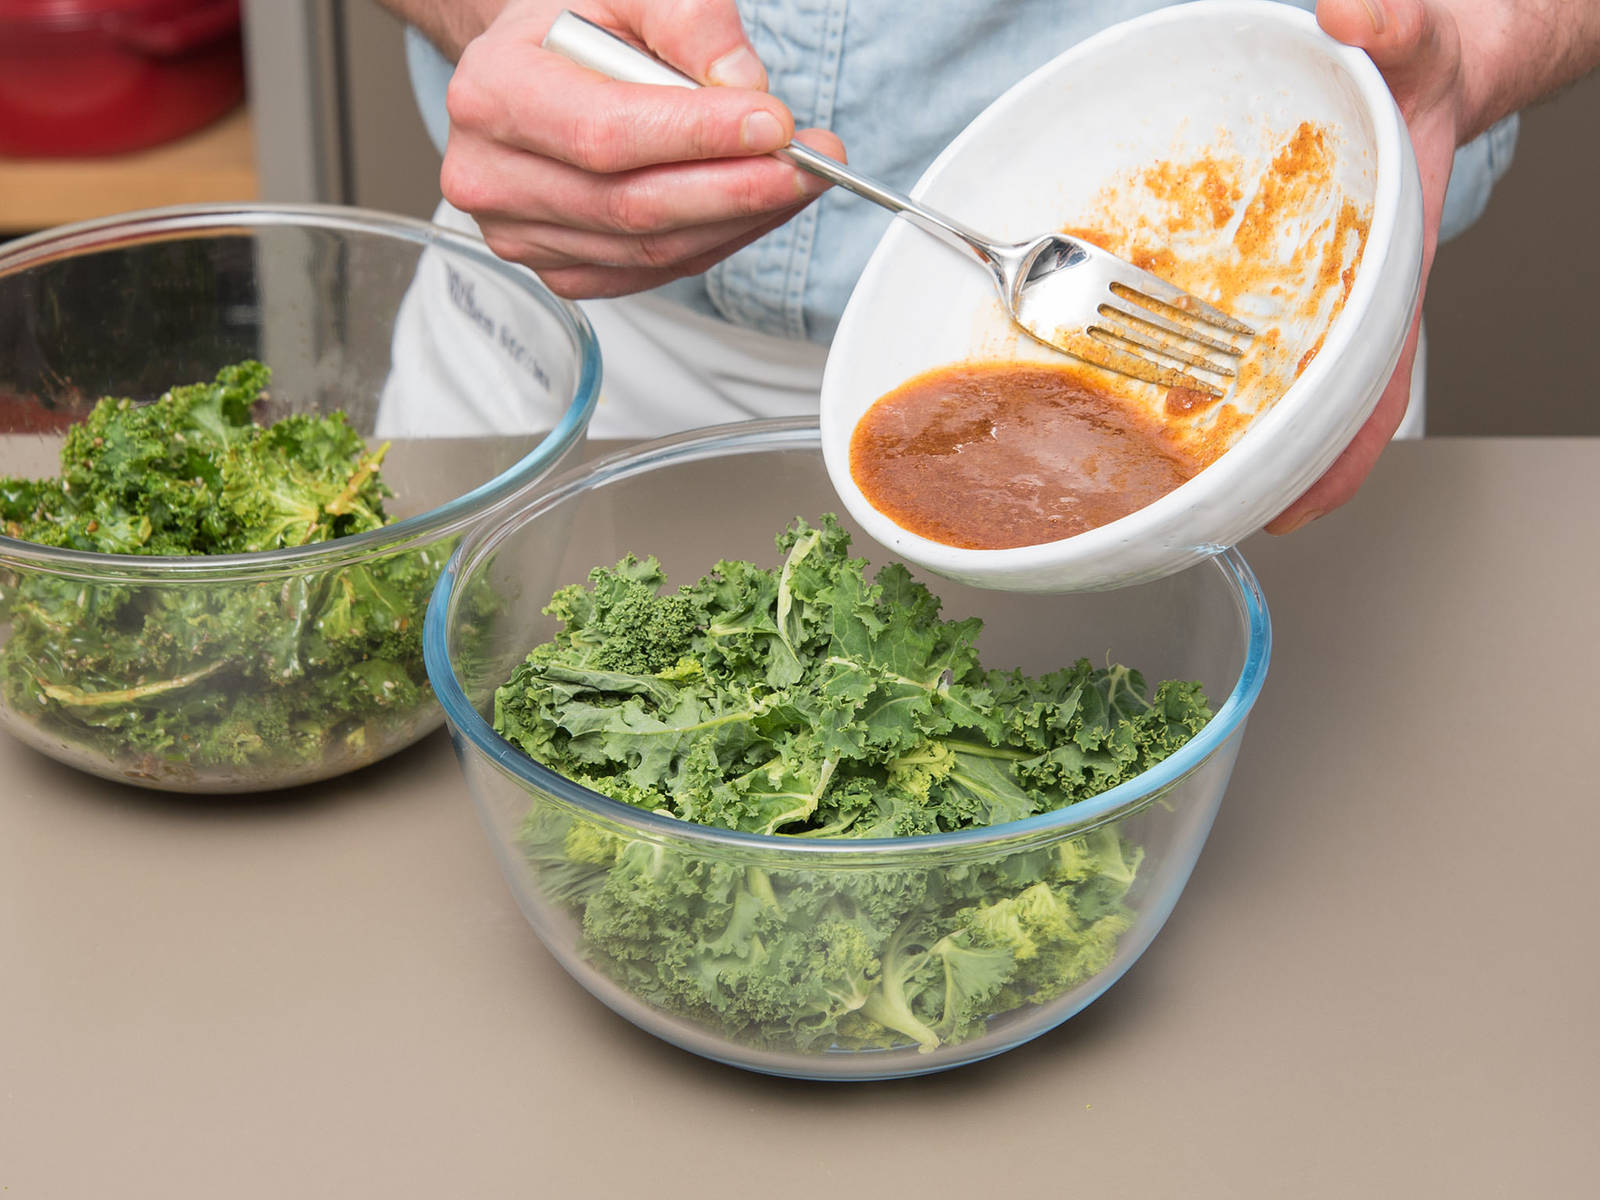 Remove kale leaves from stem, tear into bite-sized pieces, wash, and dry completely. Divide kale into two bowls, add one bowl of marinade to each, tossing until kale is fully and evenly coated.